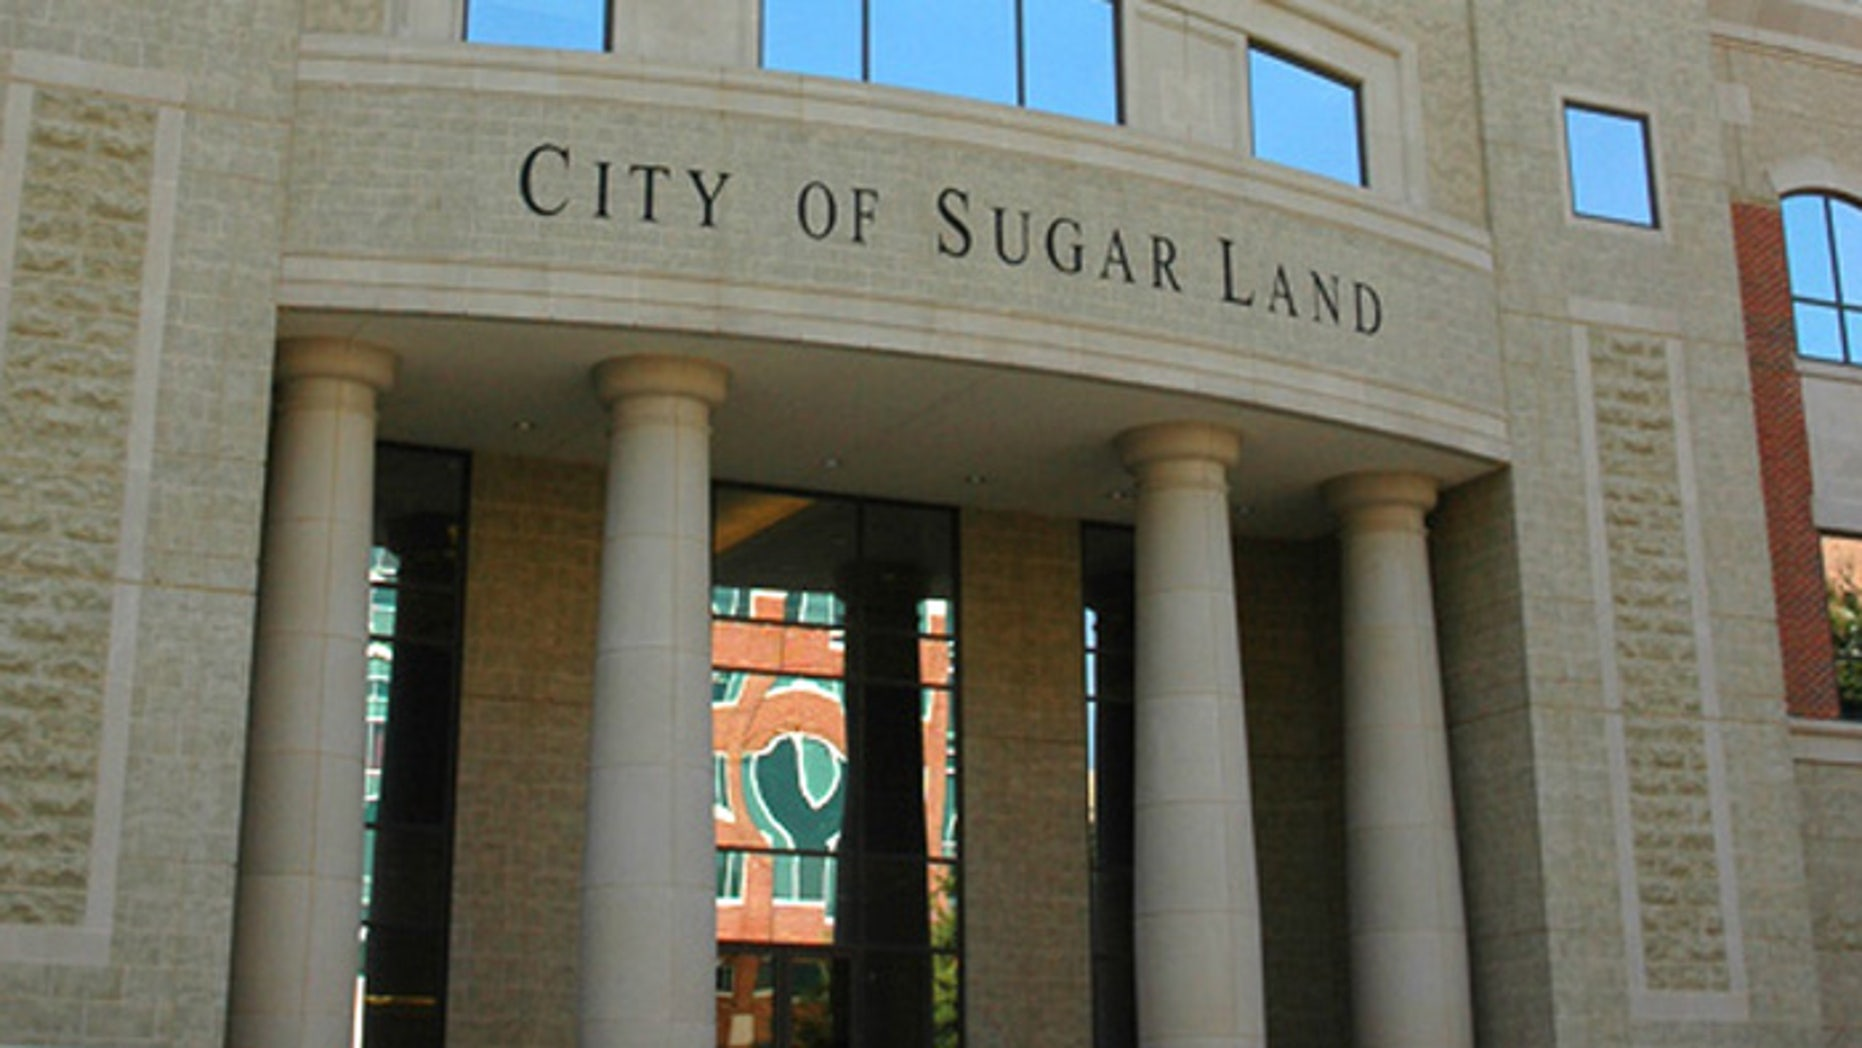 No one is going to mess with Texas city's name. (Sugar Land, Texas).